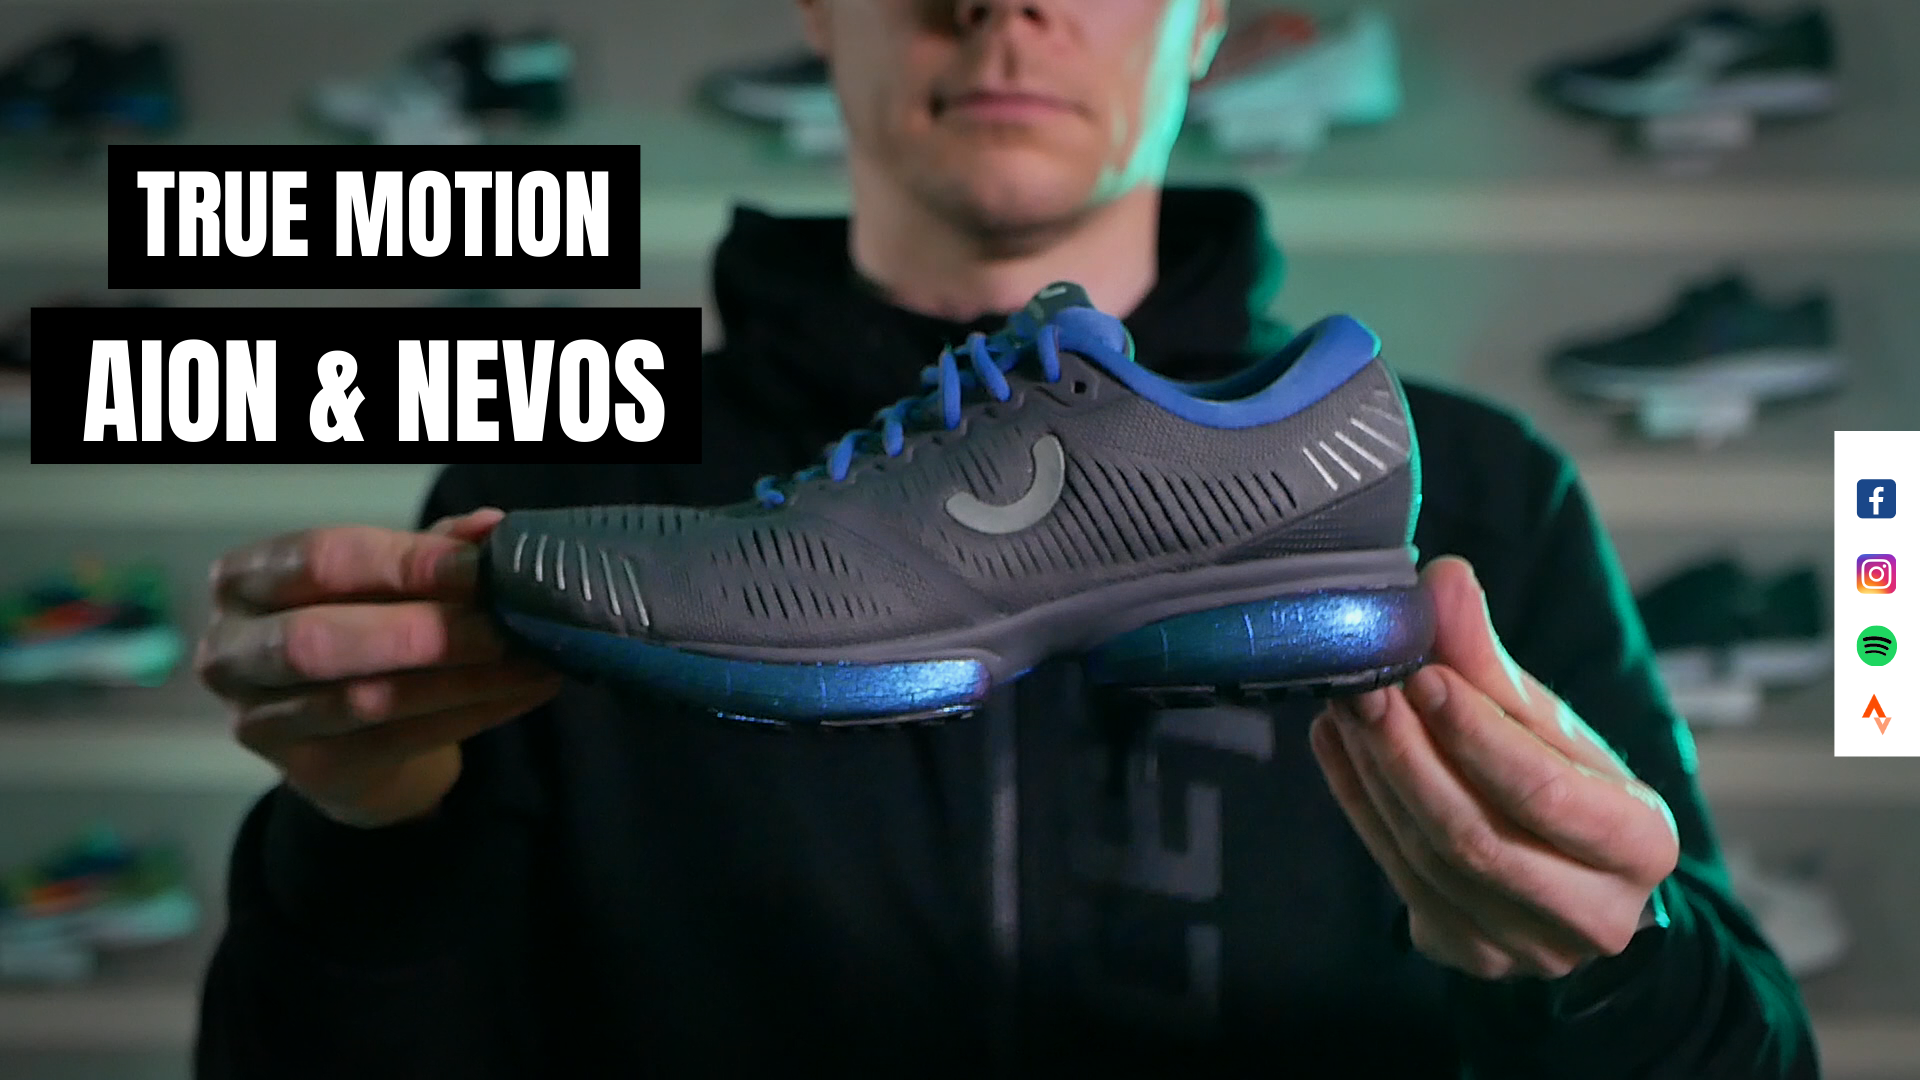 Review: True Motion Adion & Nevos